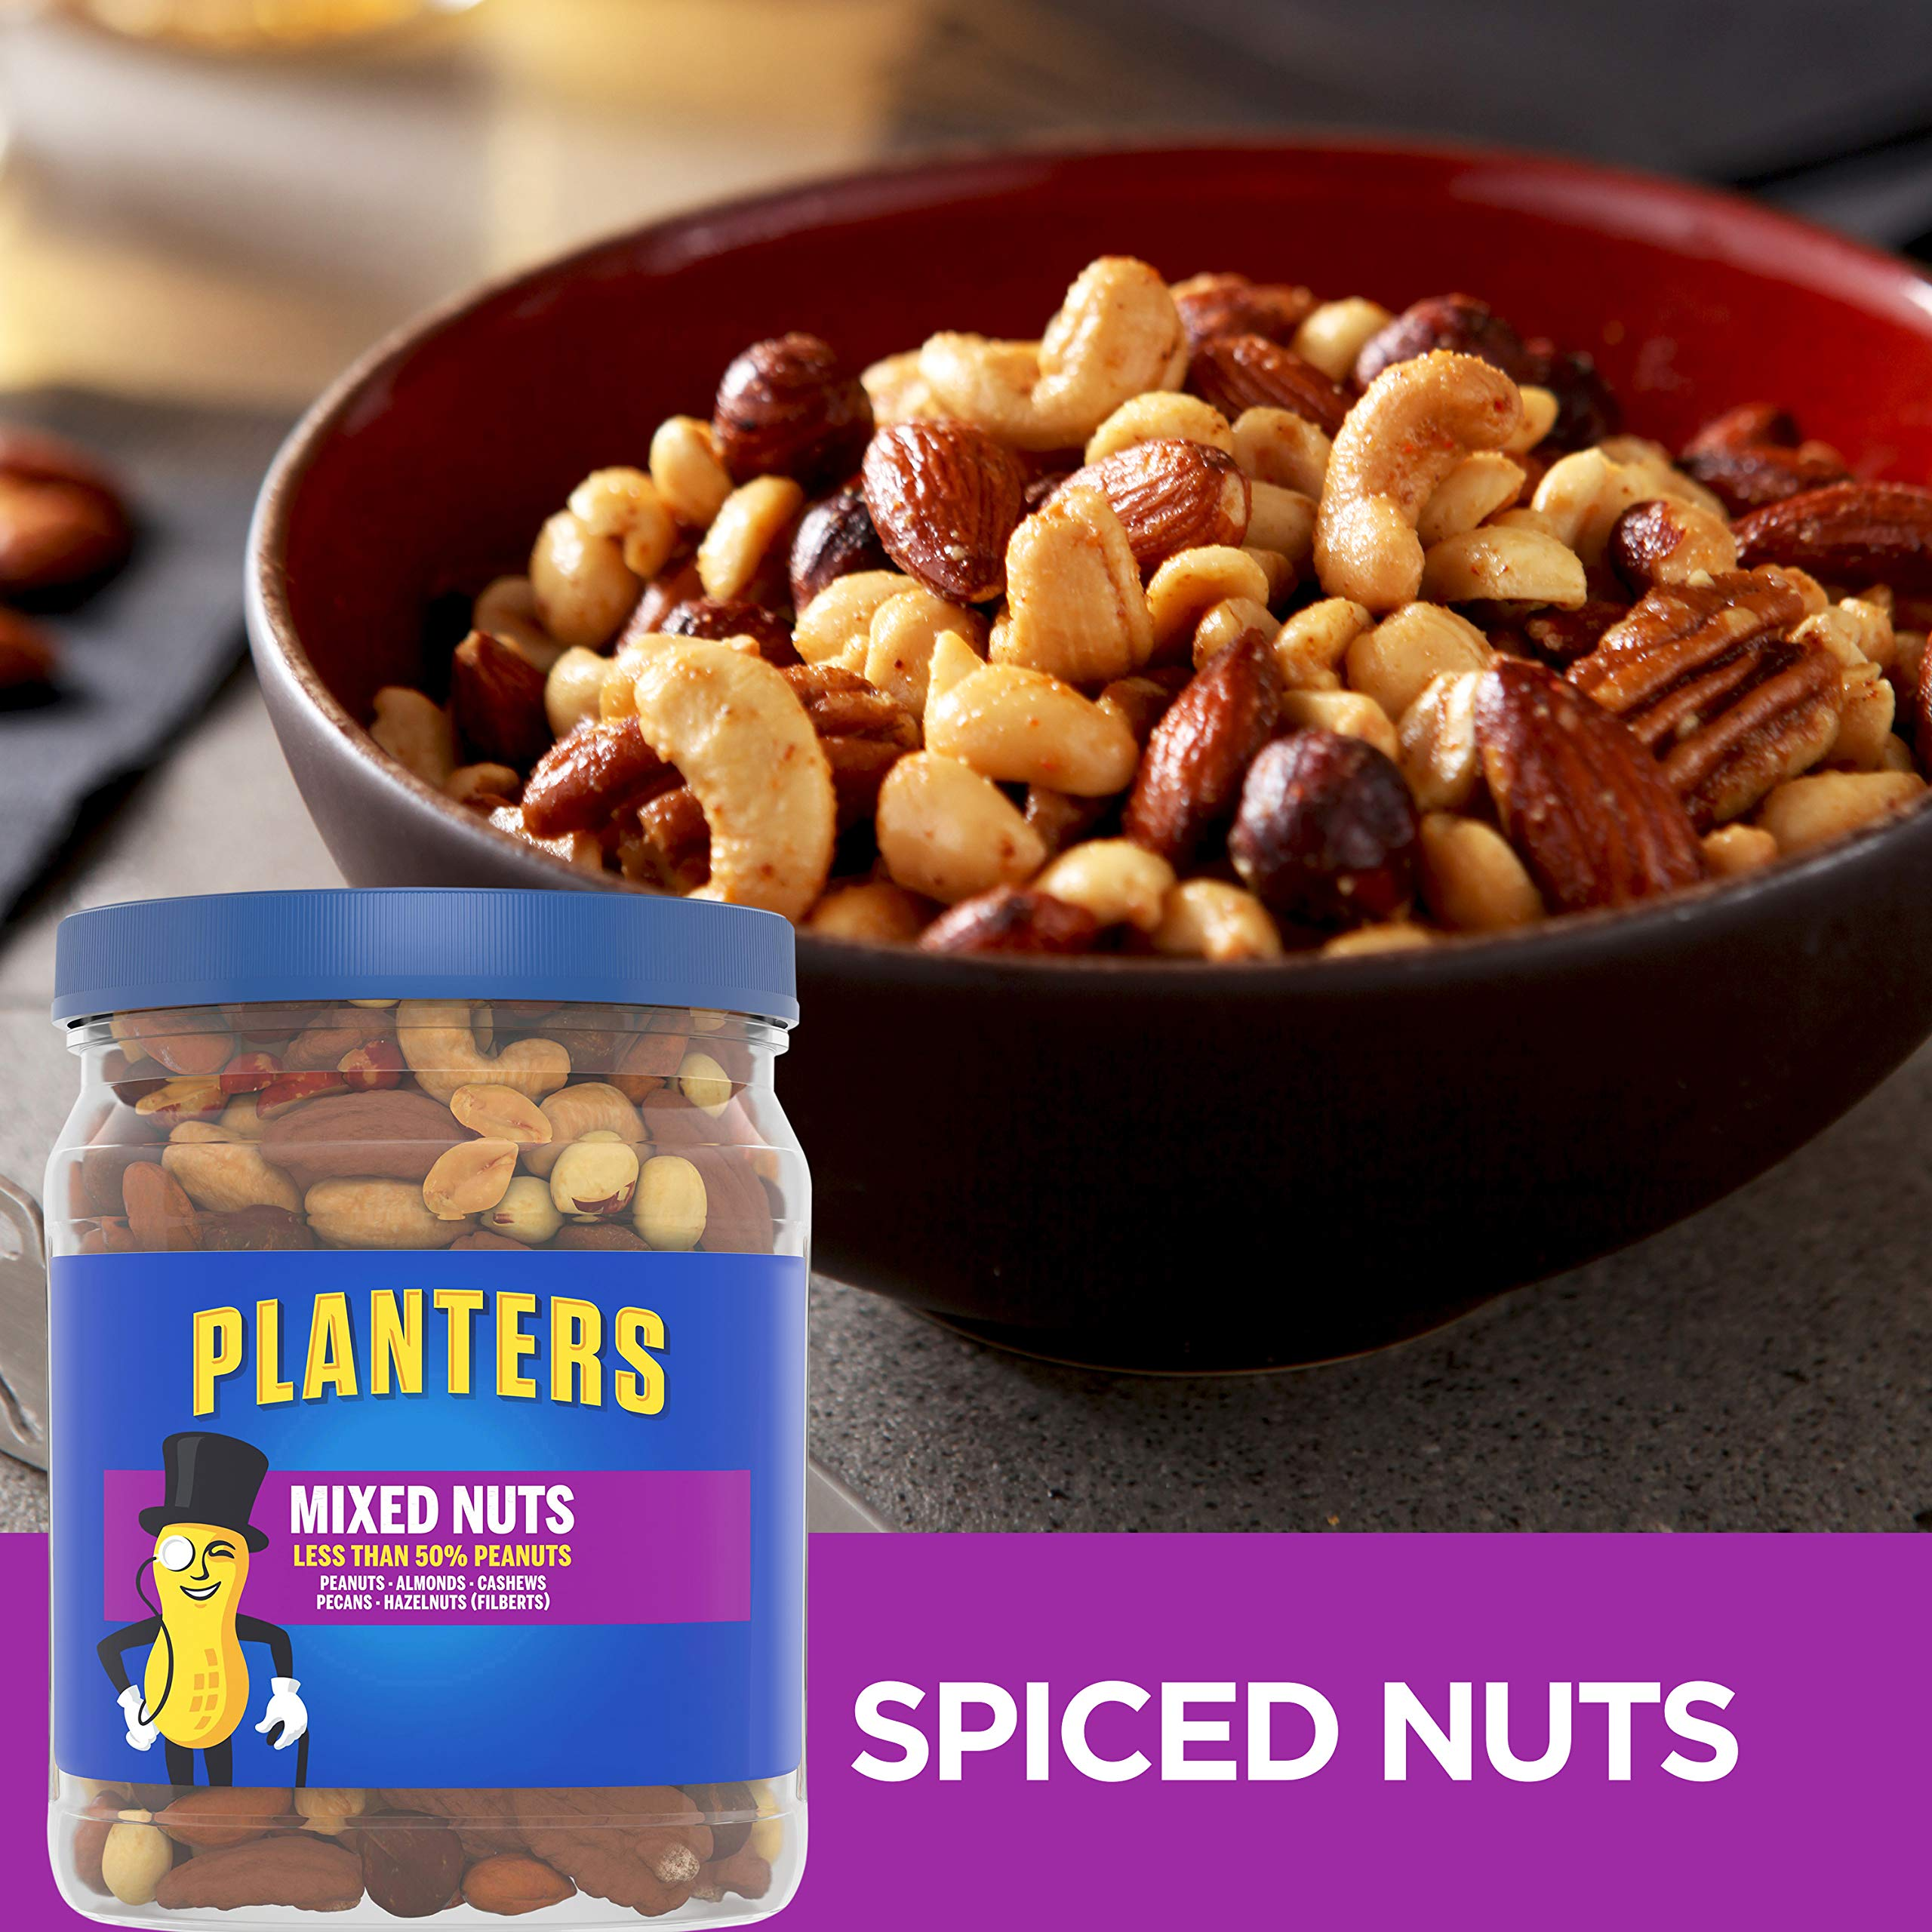 Planters Mixed Nuts, Regular Mixed Nuts, 1lb 11 Ounce Jar by Planters (Image #5)